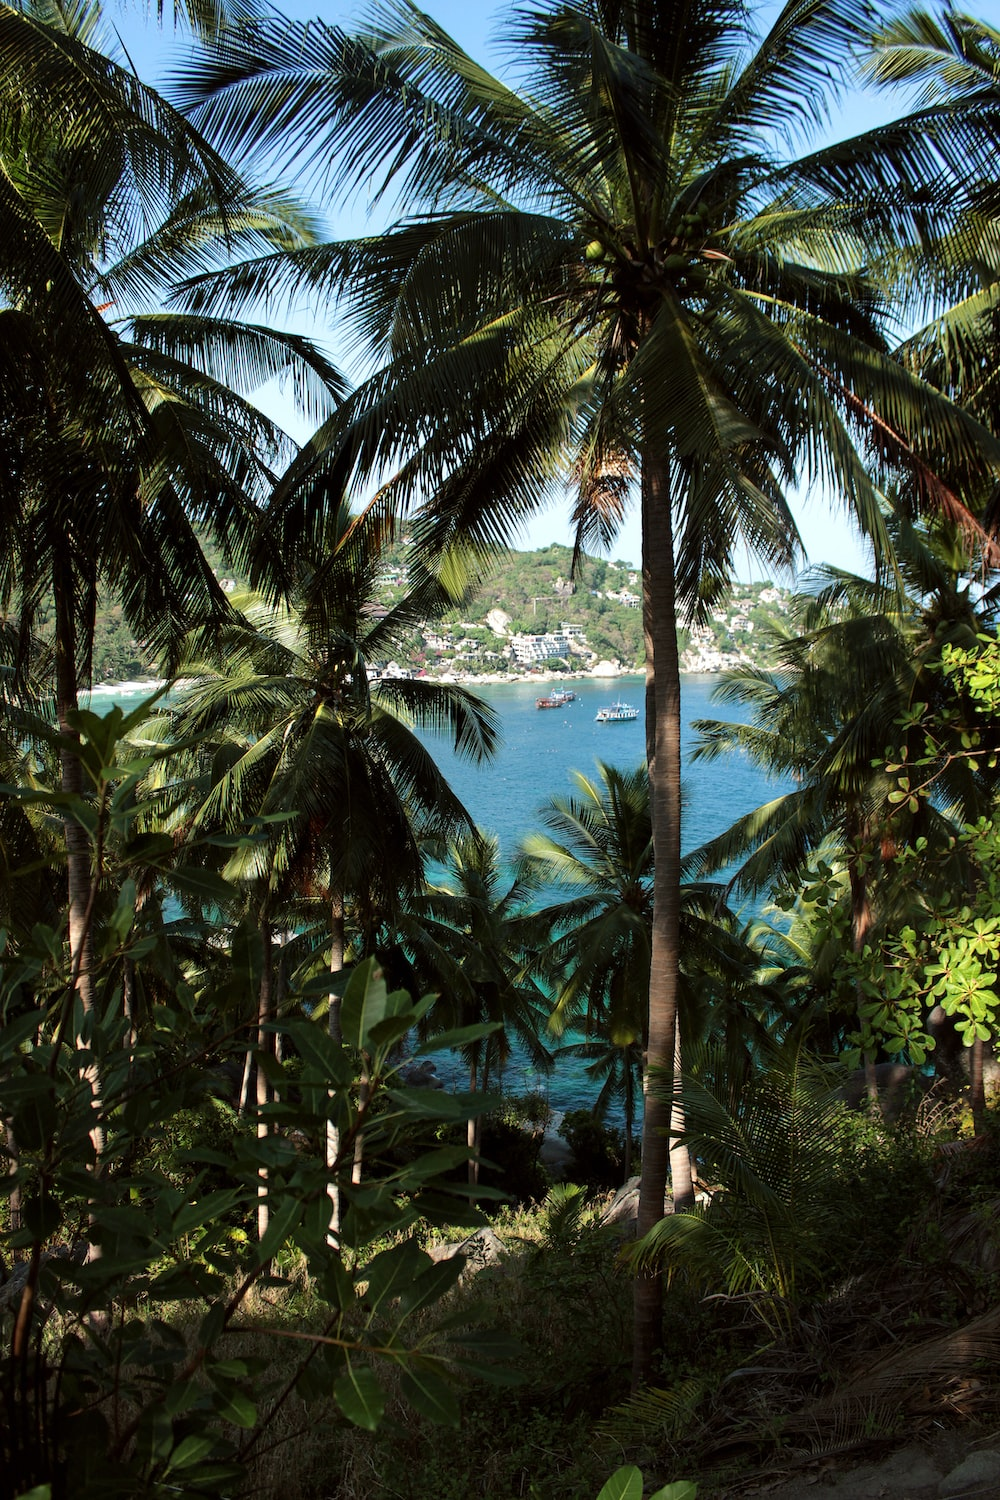 green coconut palm trees near body of water during daytime